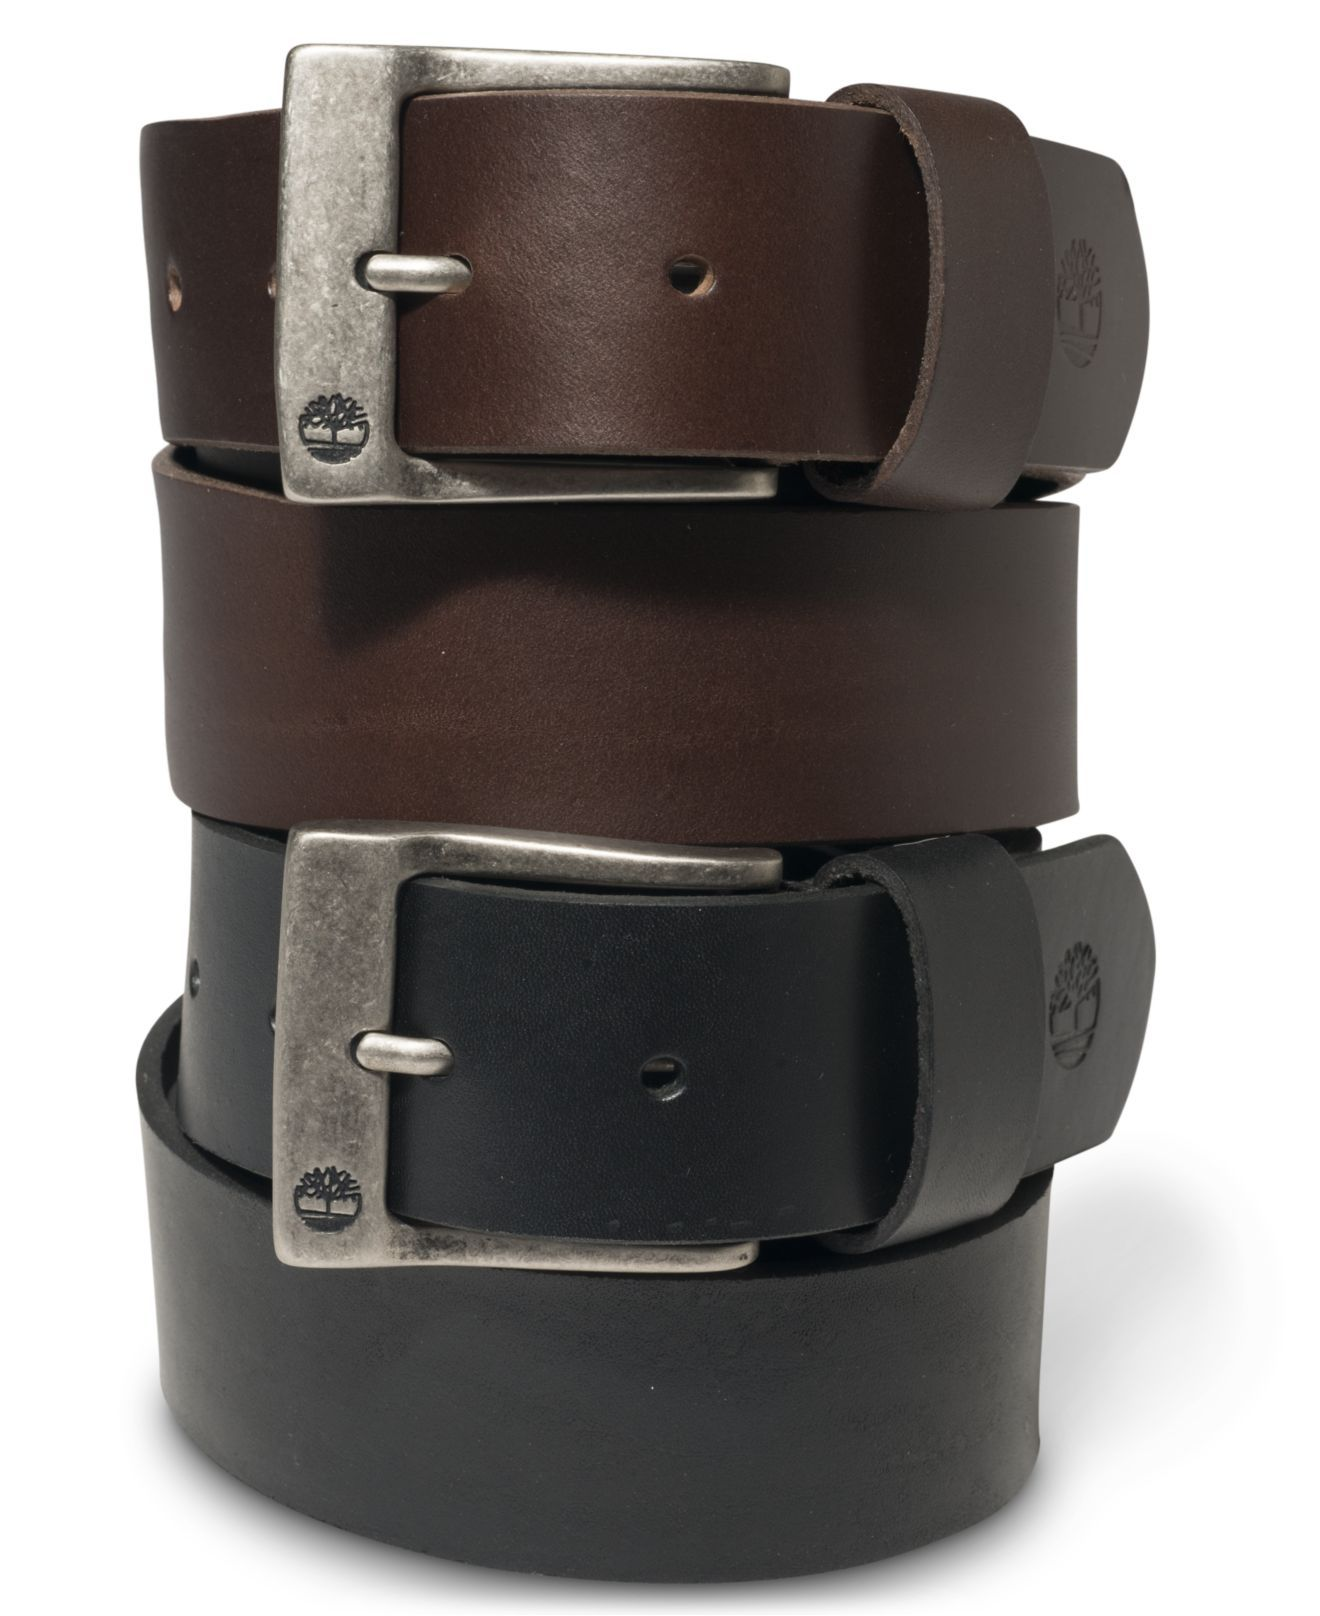 Timberland Black And Brown Leather Belt